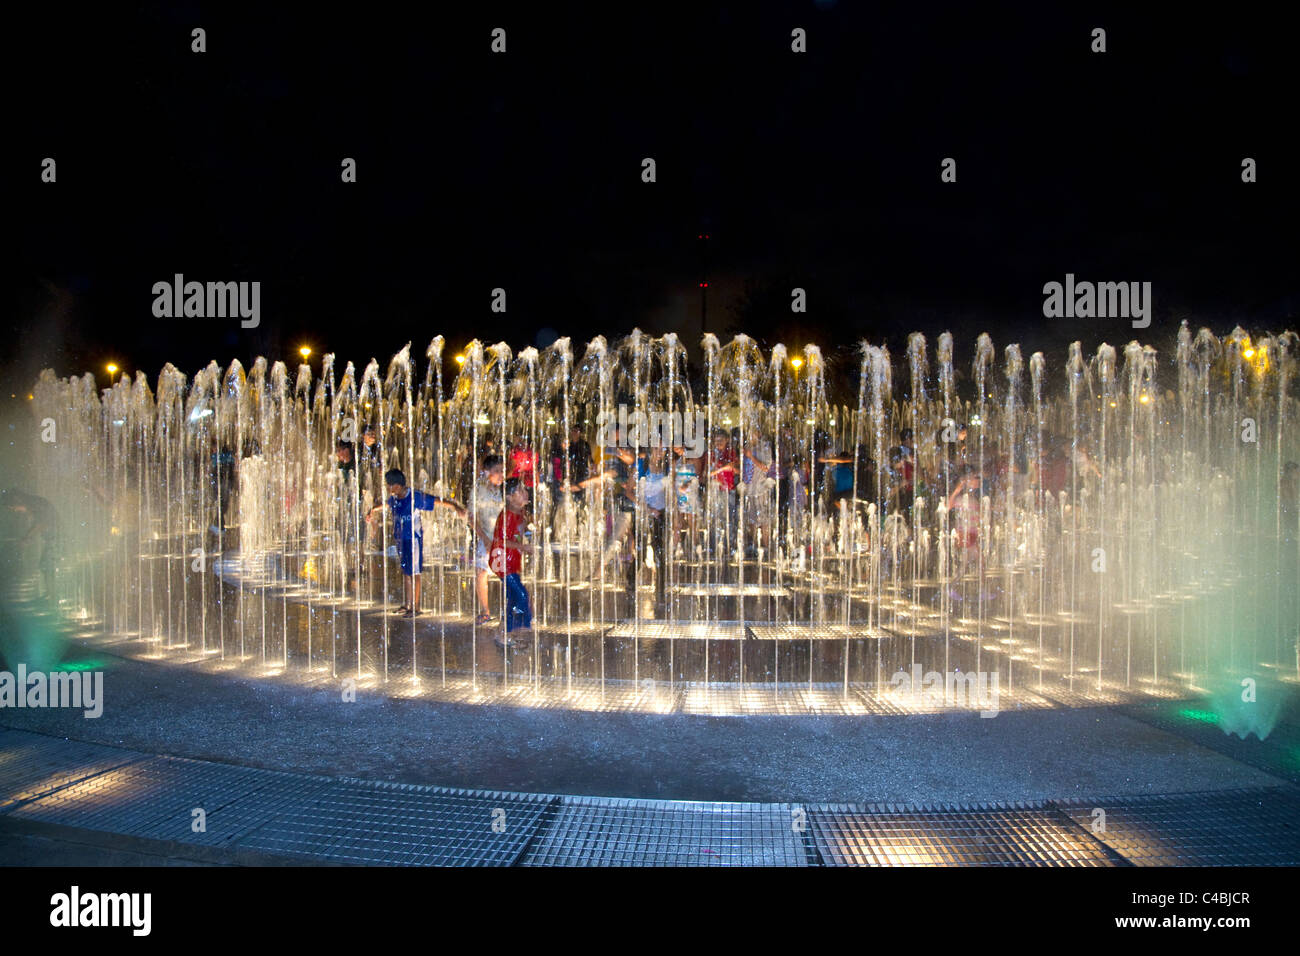 Water fountains lima -  Water Fountains Light Up At Night In The Magic Circuit Of Water Park In Lima